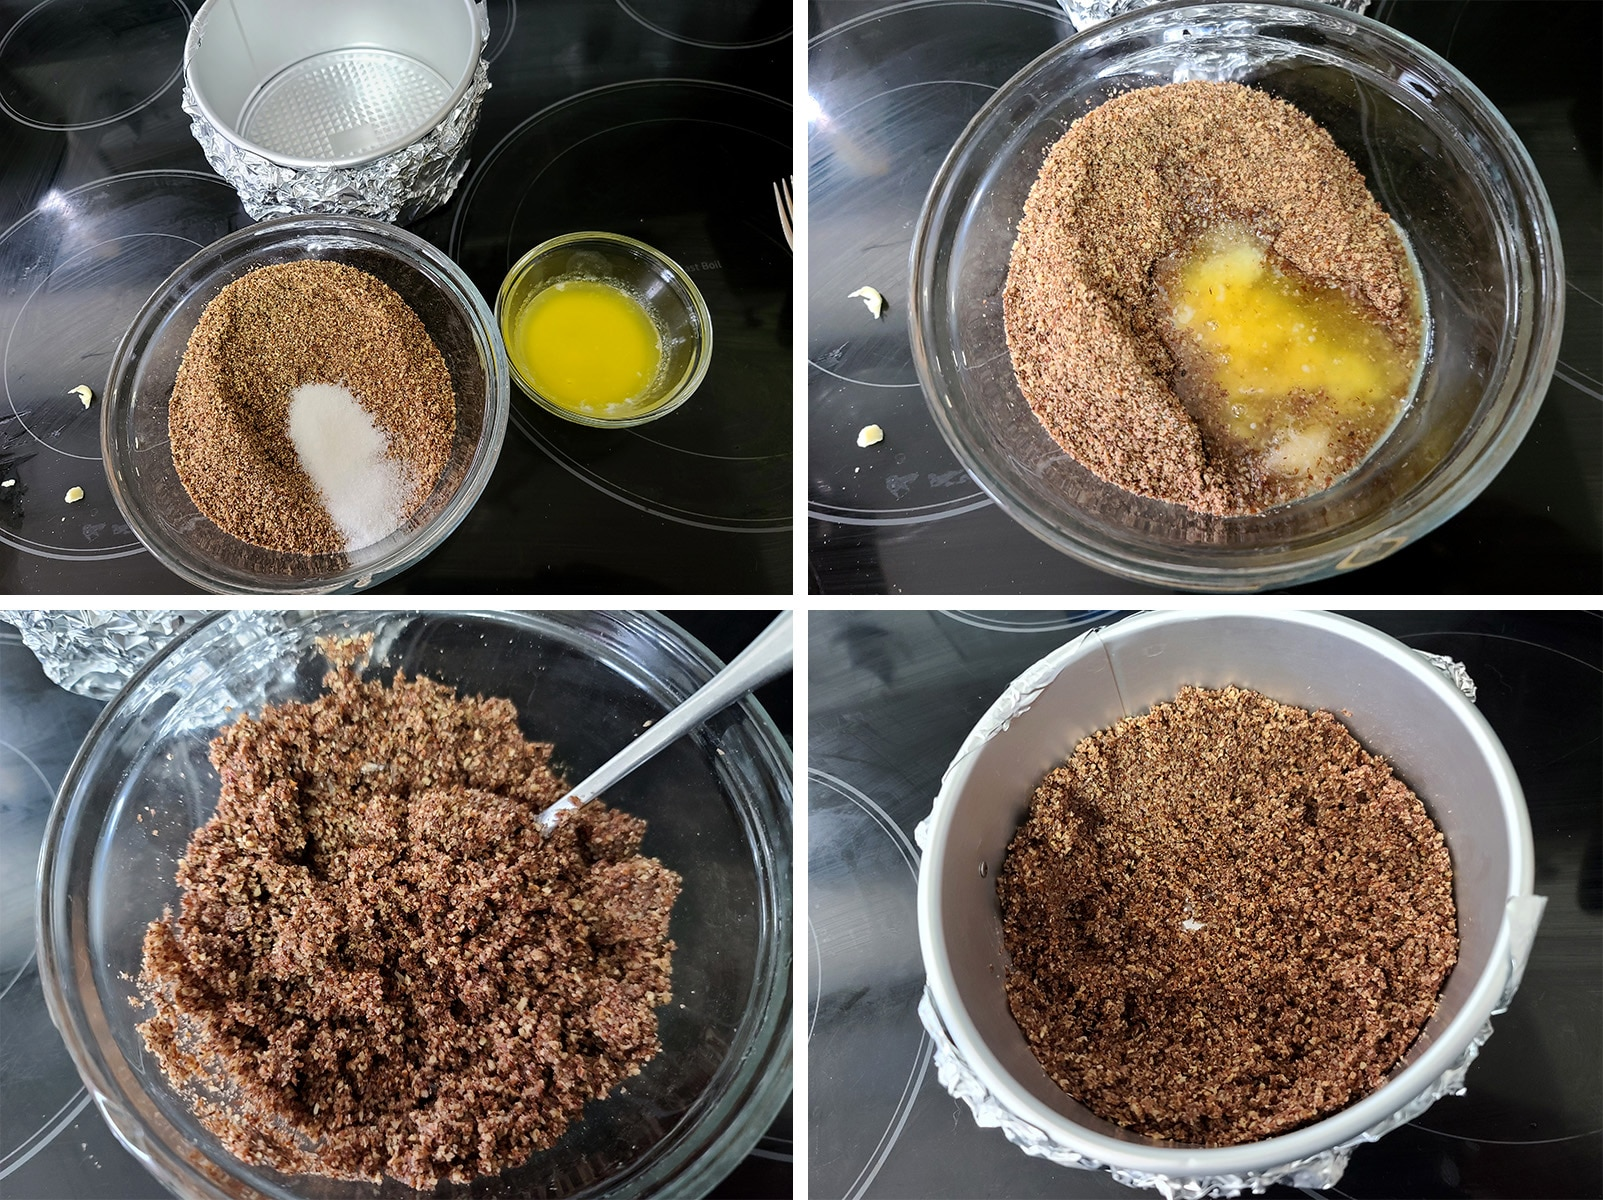 A 4 part image showing the crumb crust being mixed, and put into the bottom of the prepared pan.